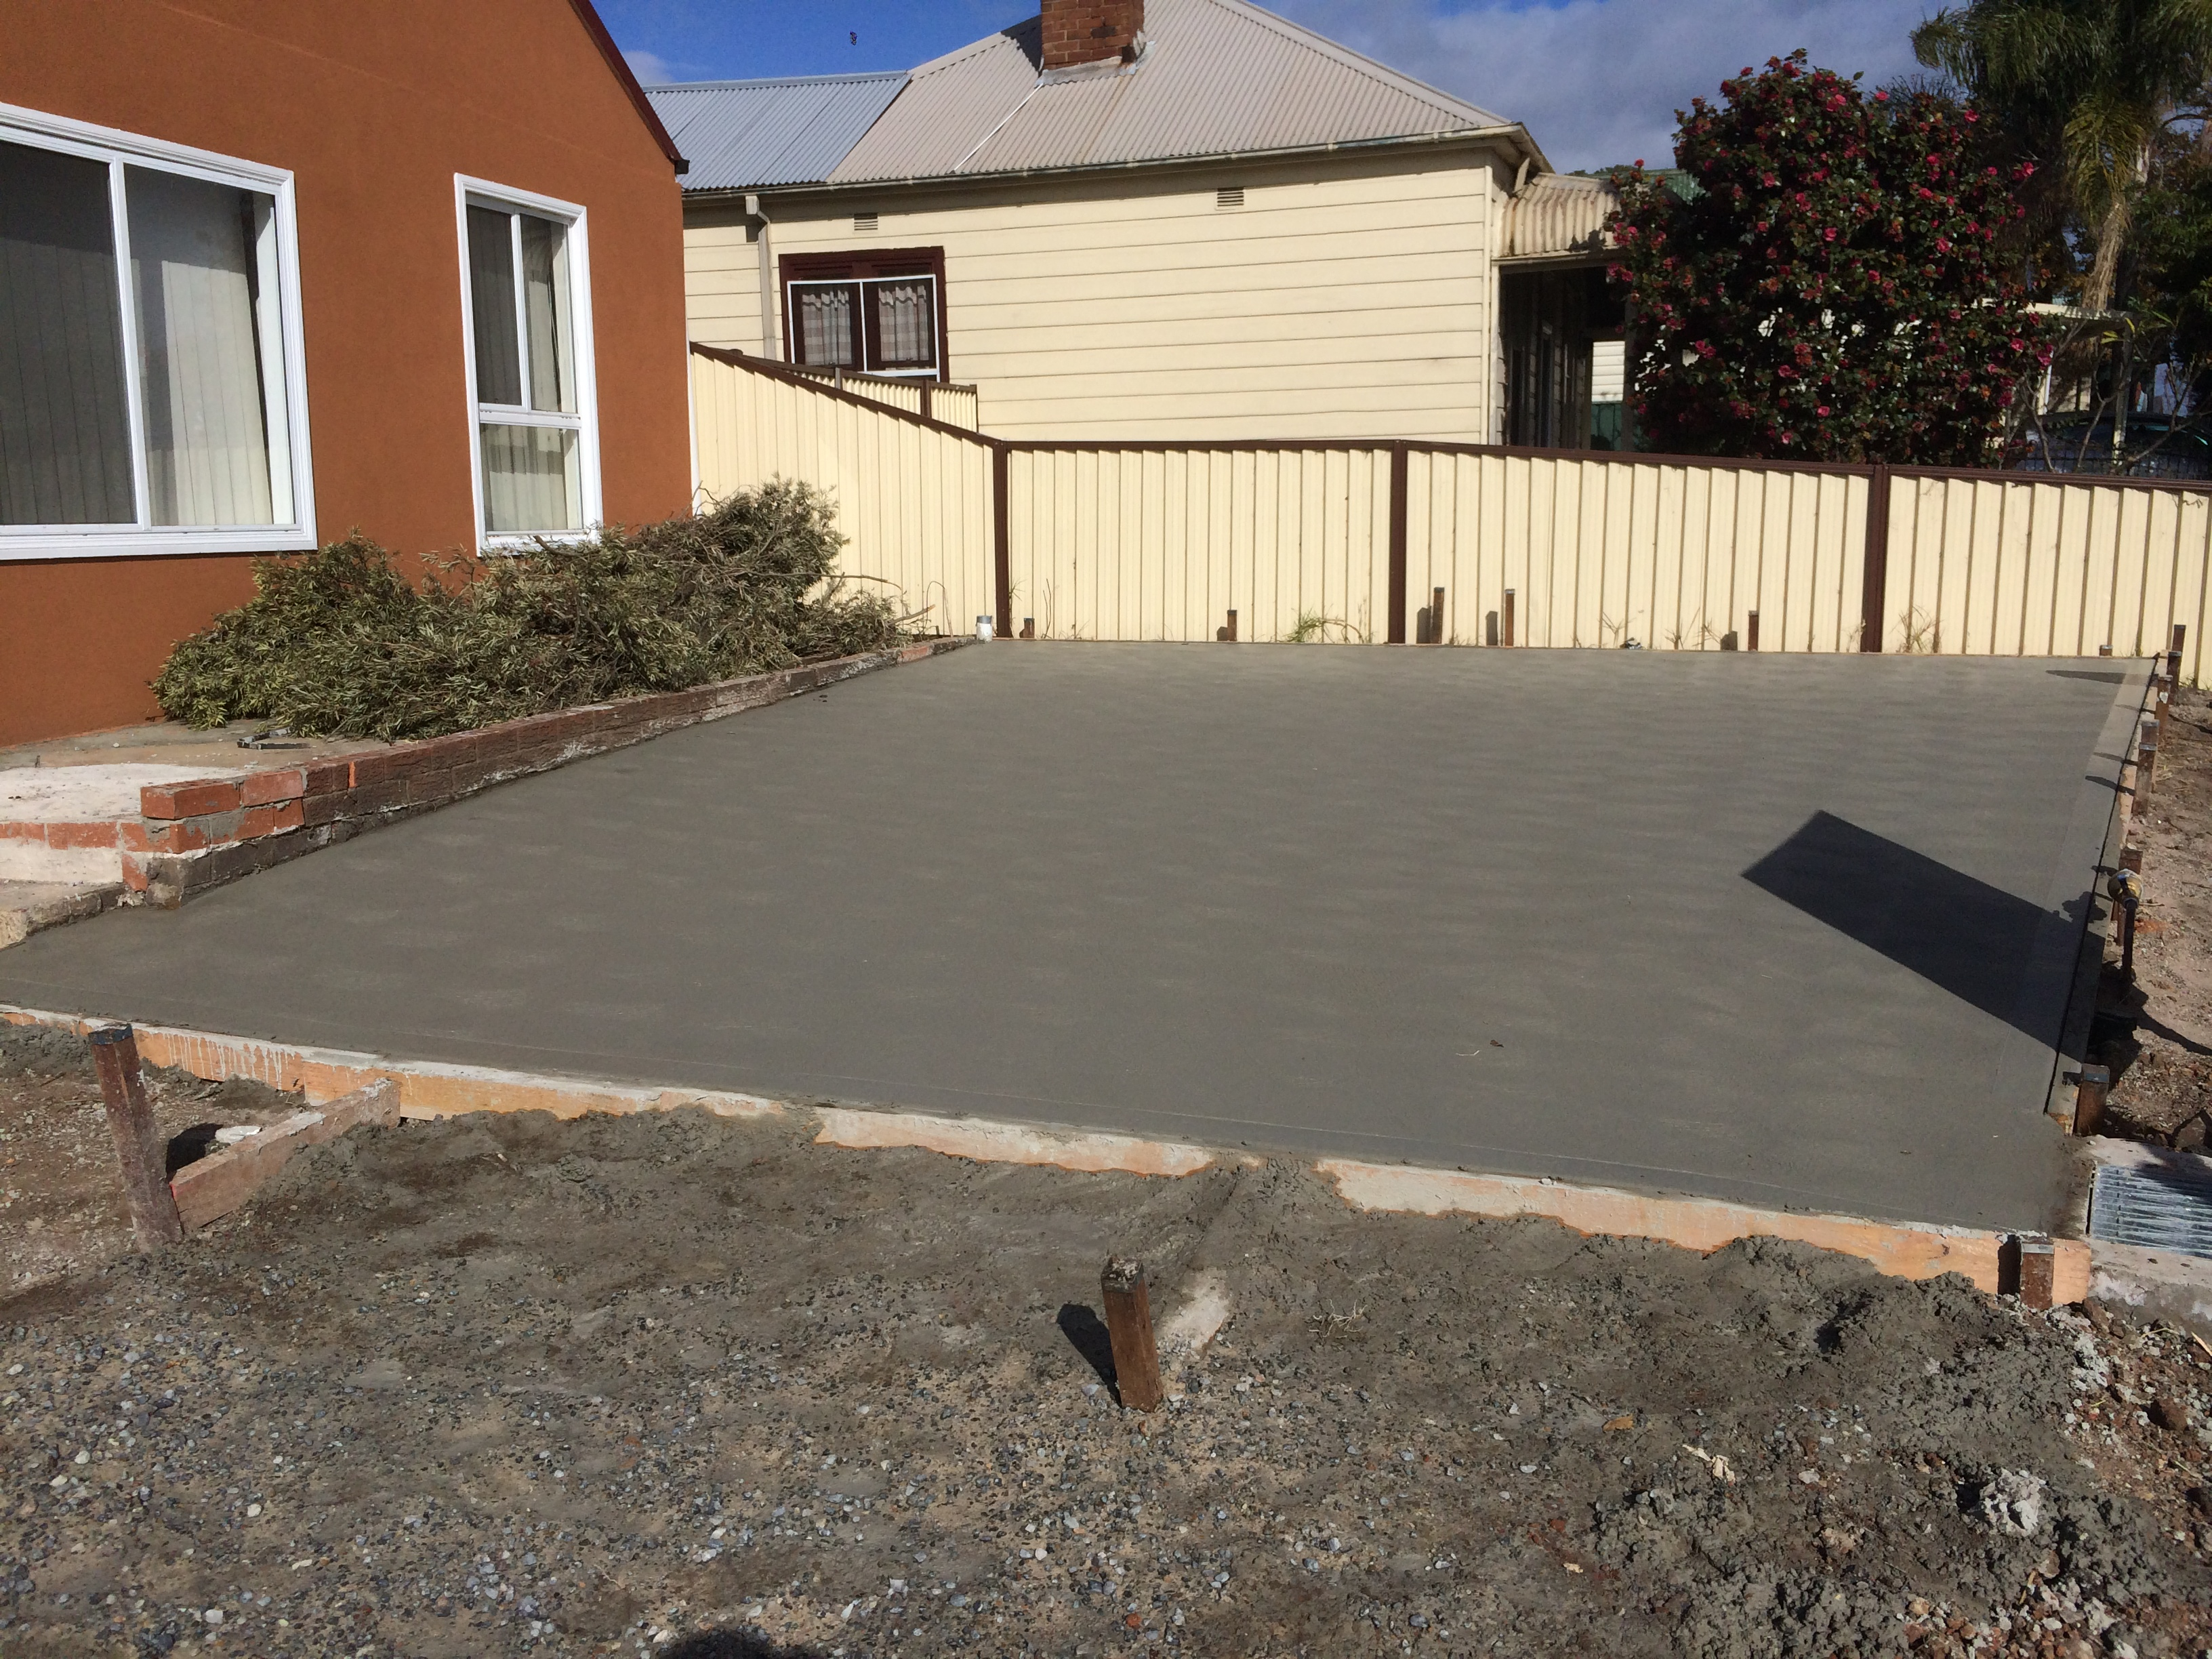 Carport concrete slab